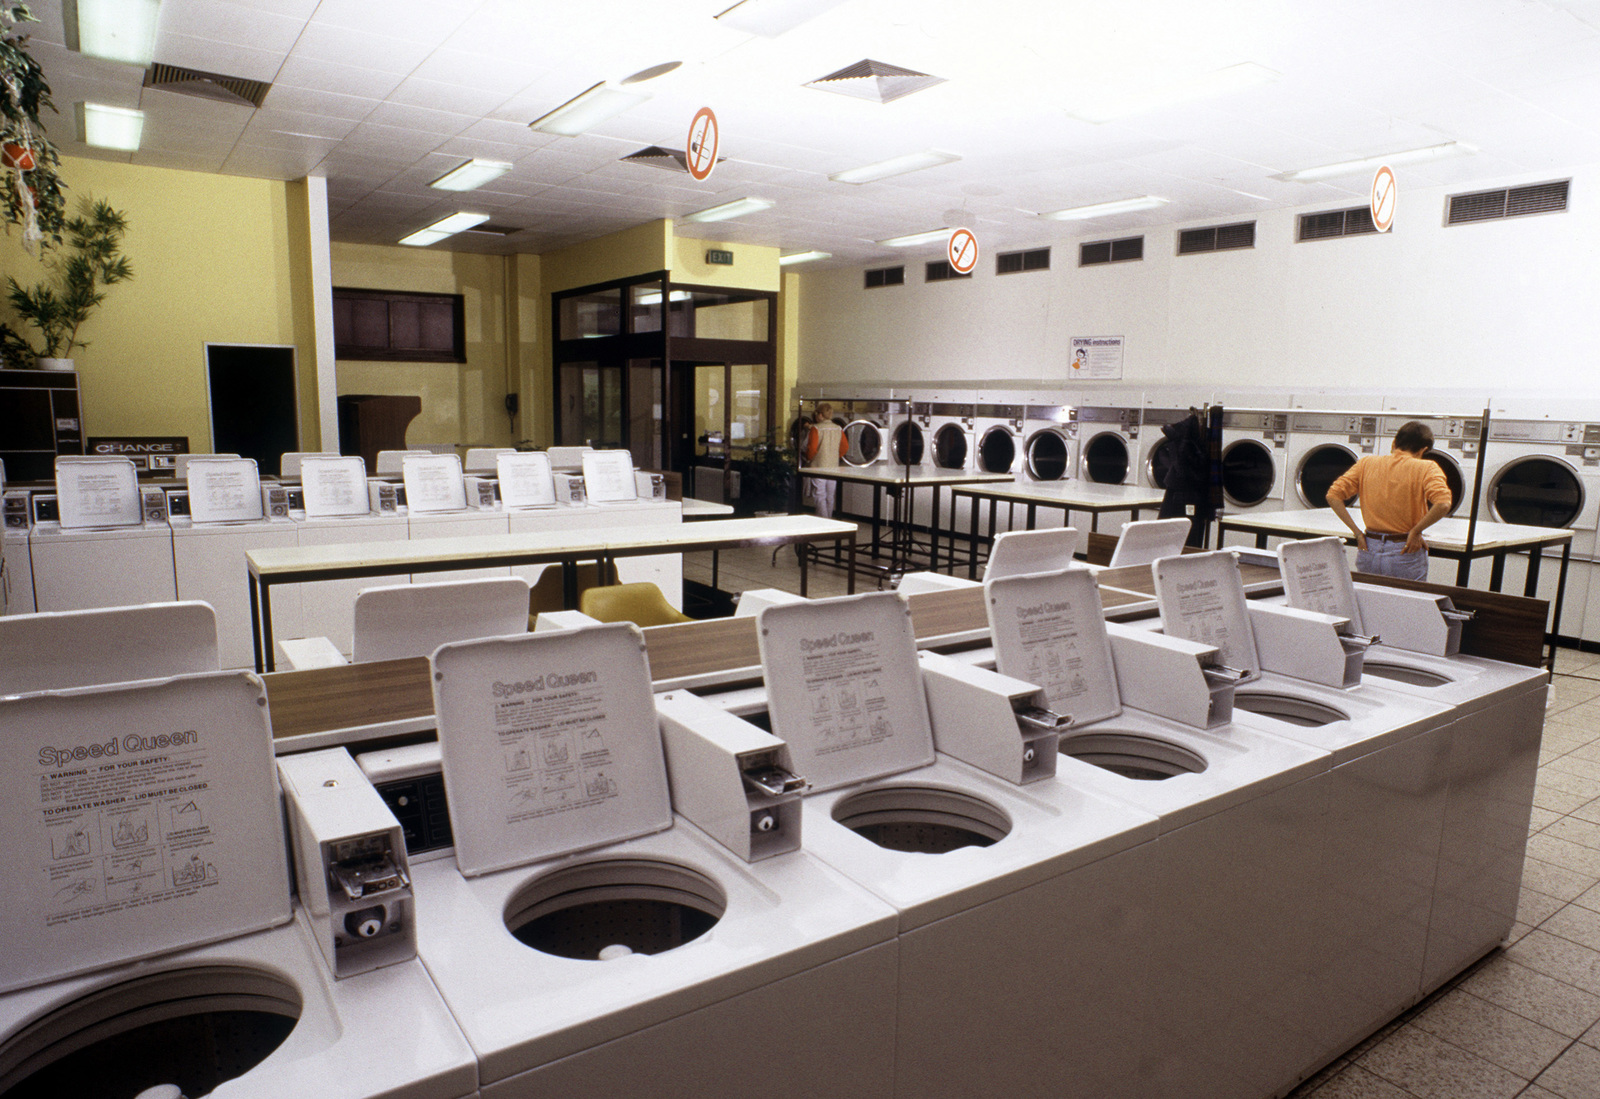 Customers use the Truman Plaza laundry, an Army/Air Force Exchange facility